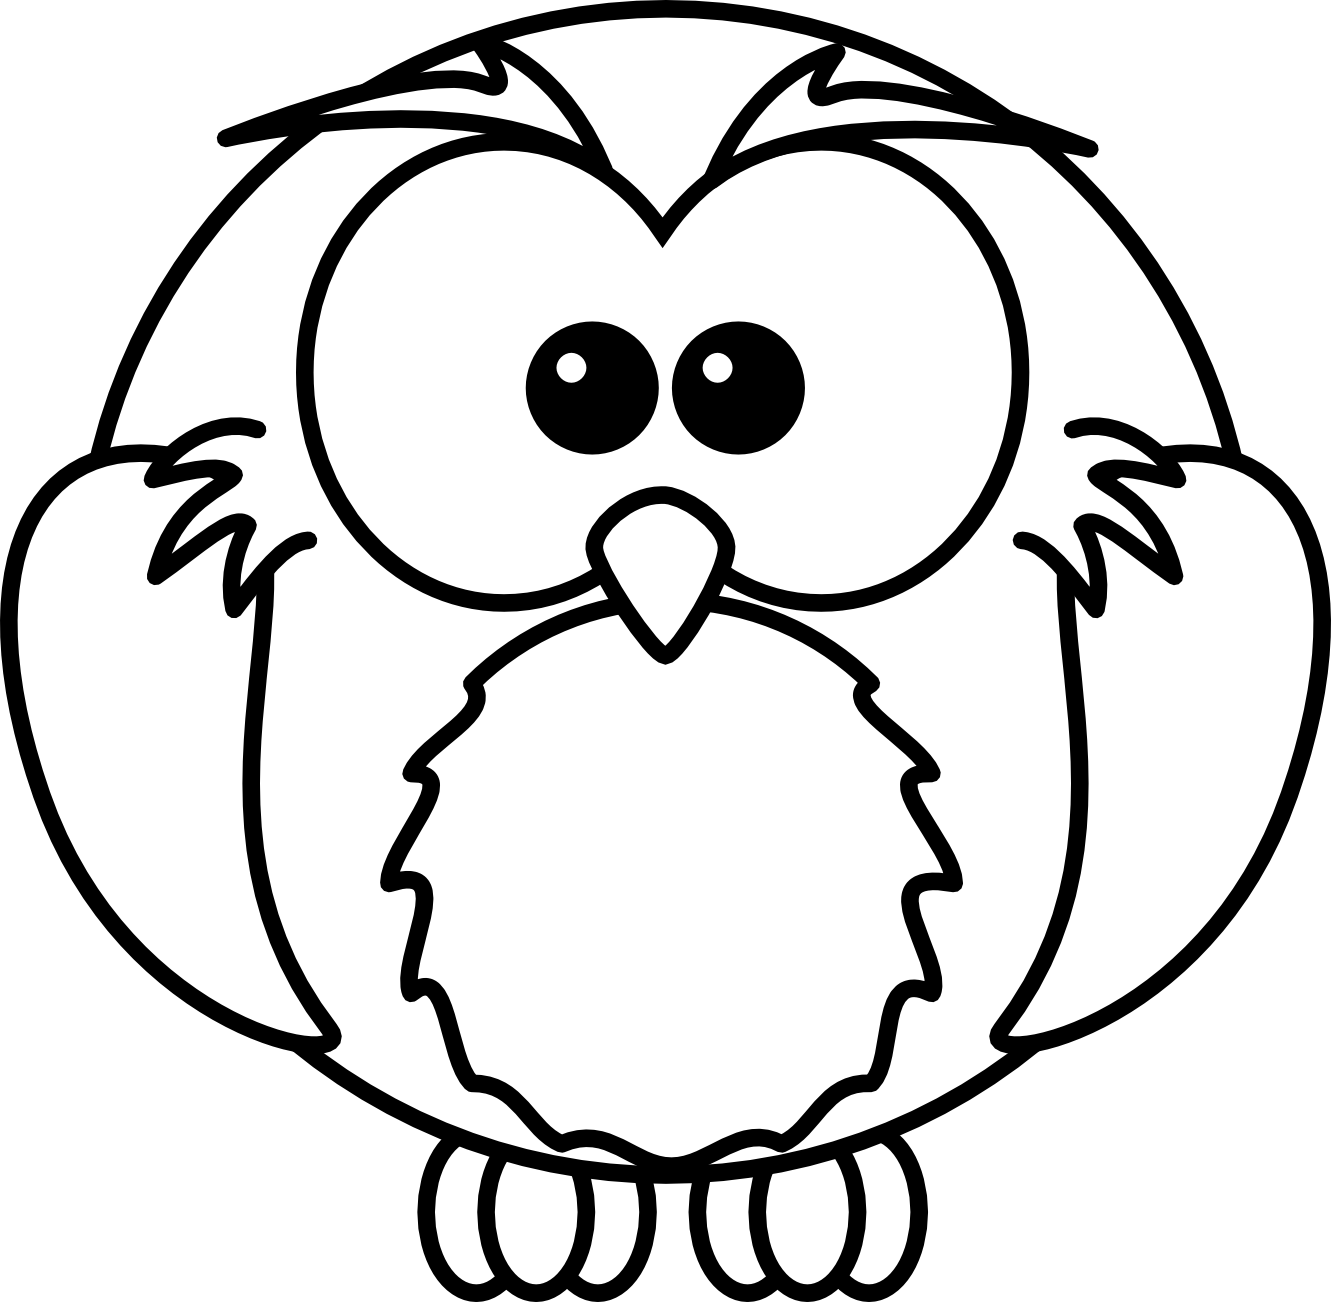 1331x1302 Animal Black And White Clipart